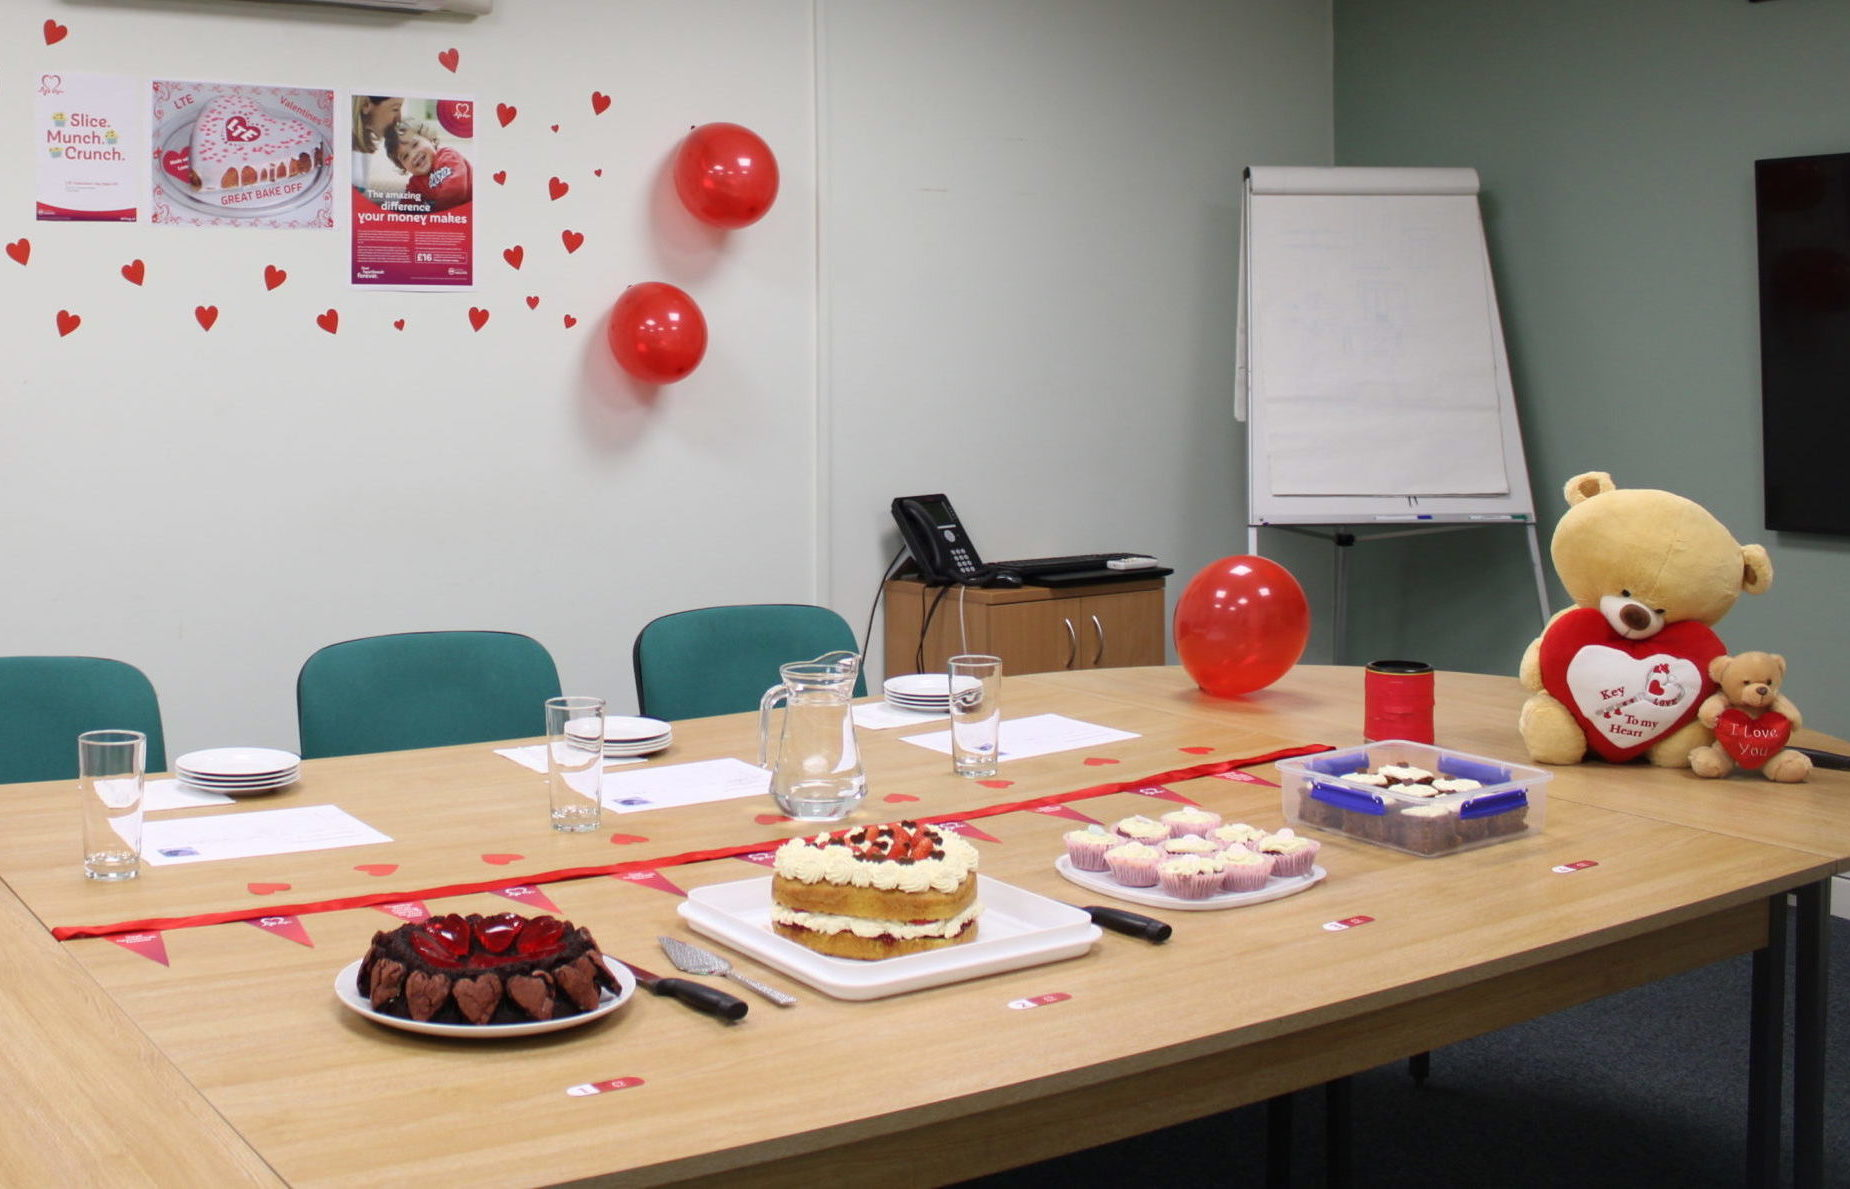 LTE Bake Off judging table